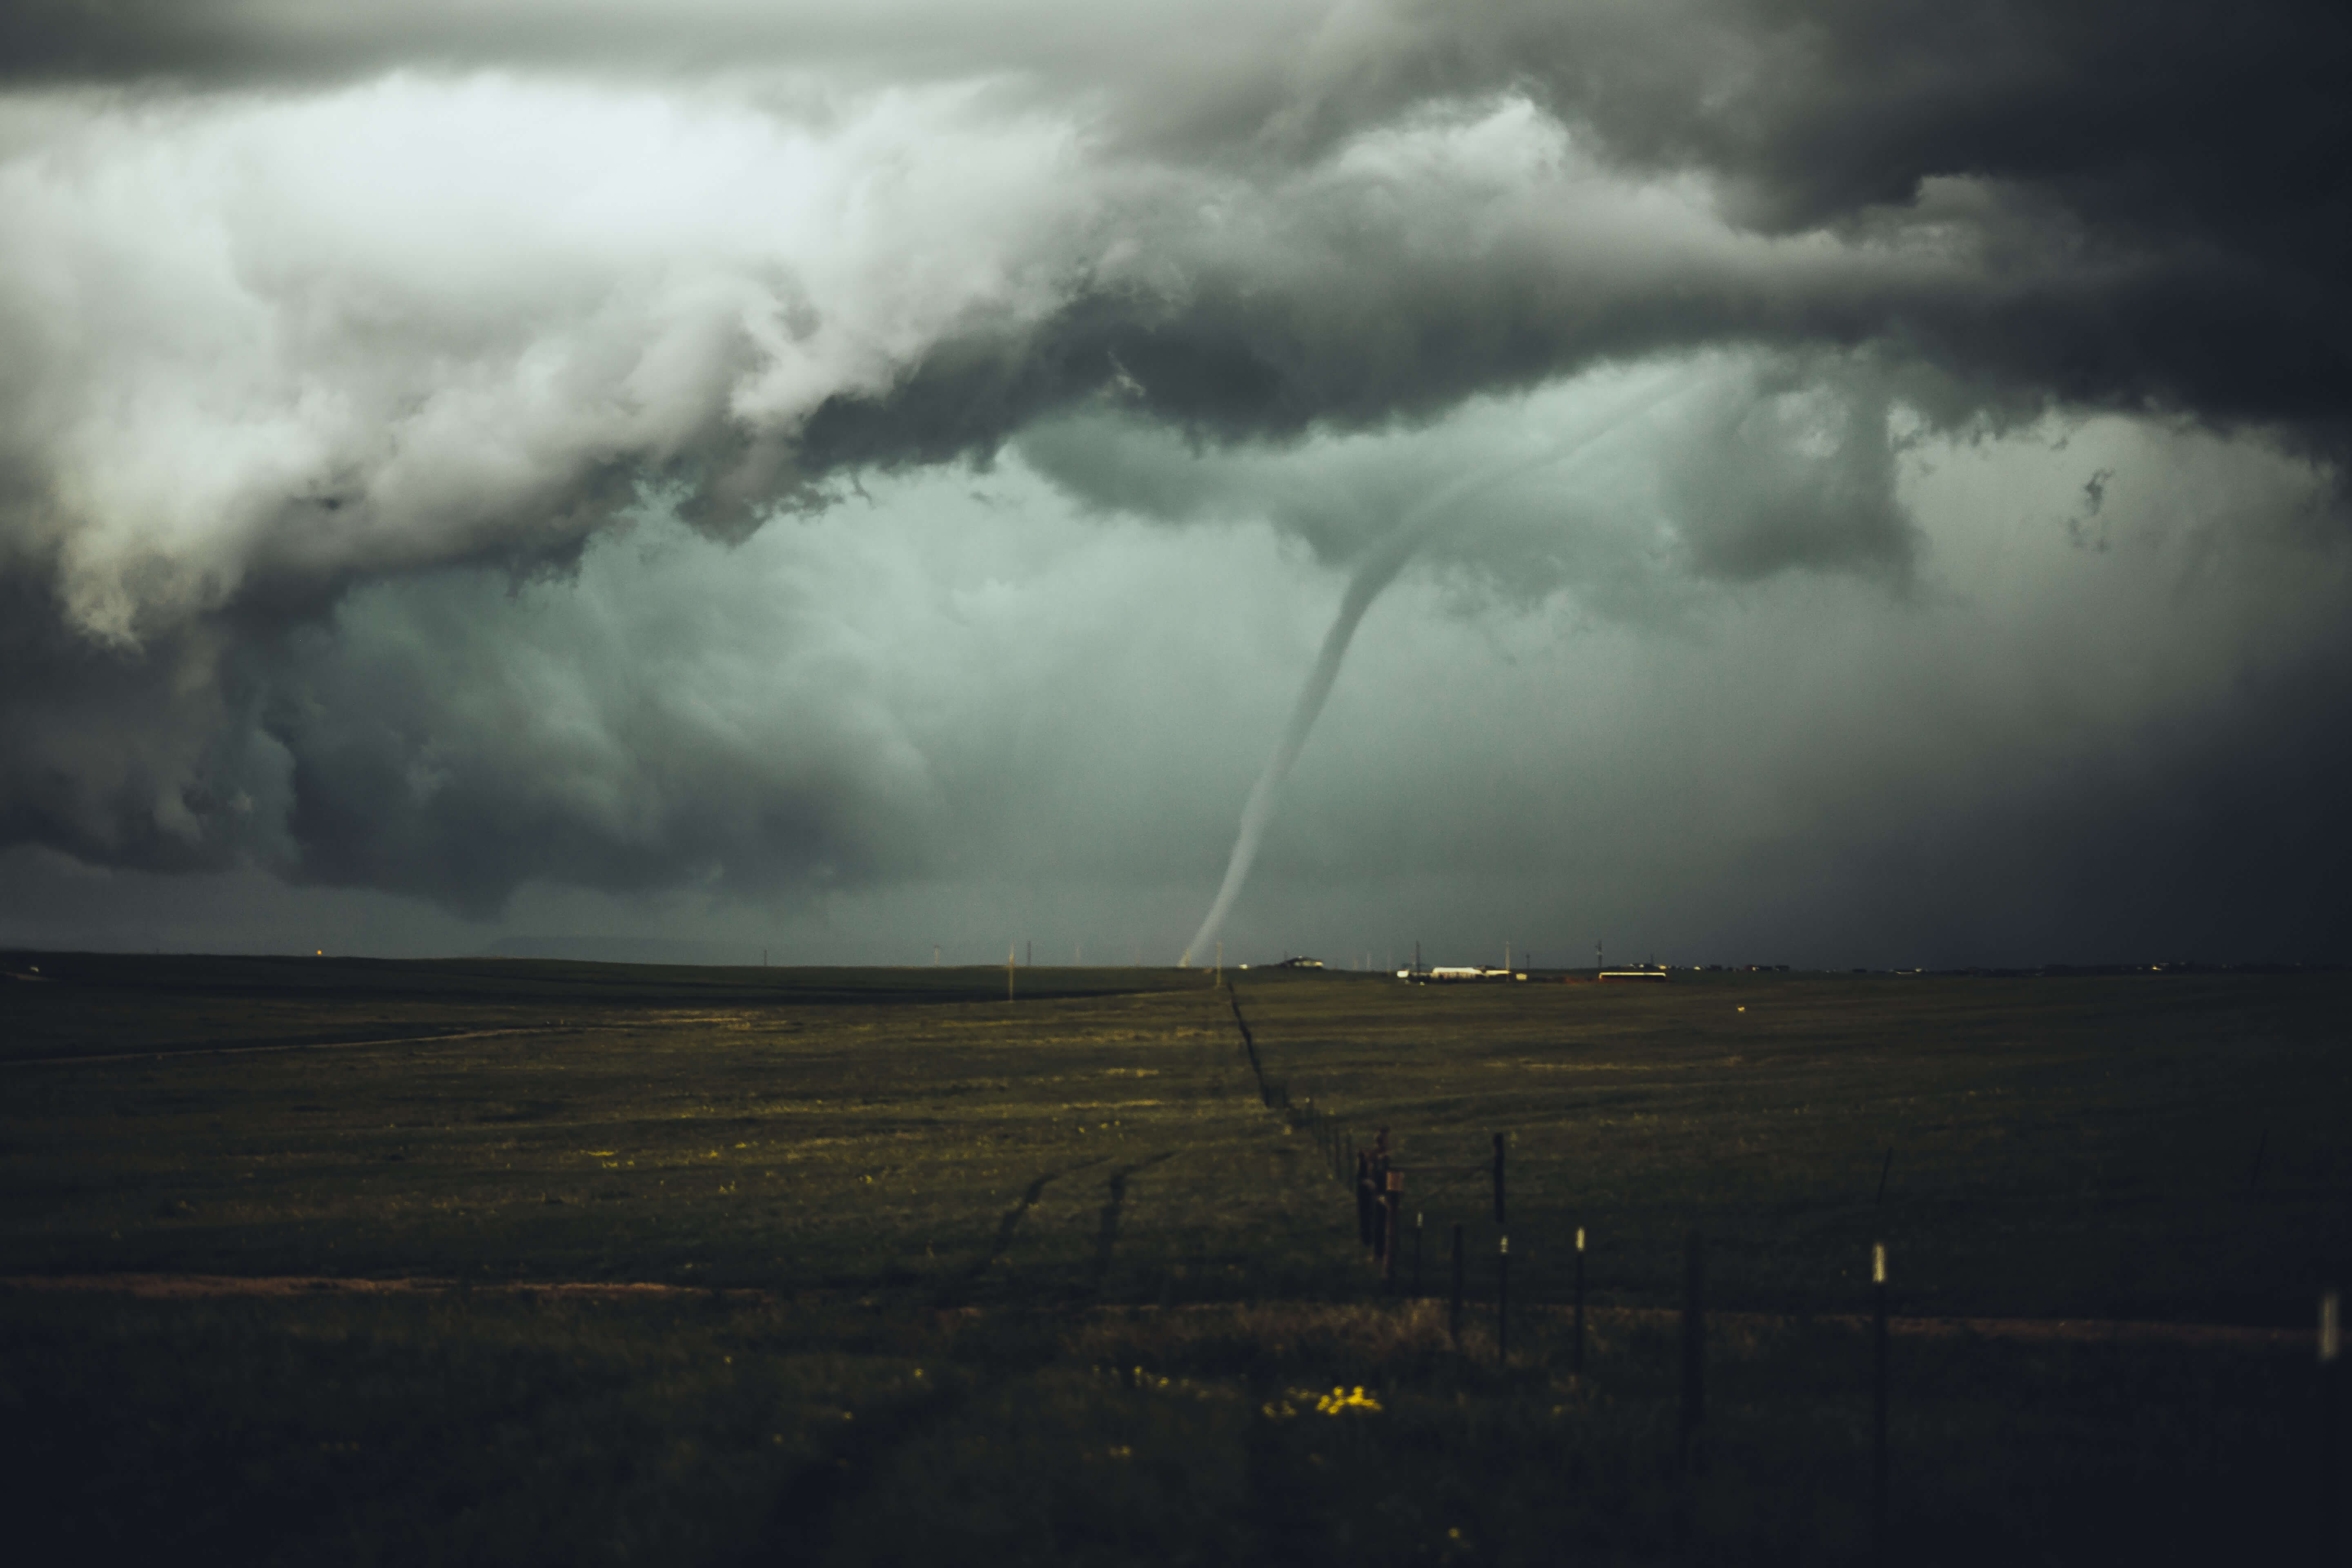 tornado at a distance in a green field